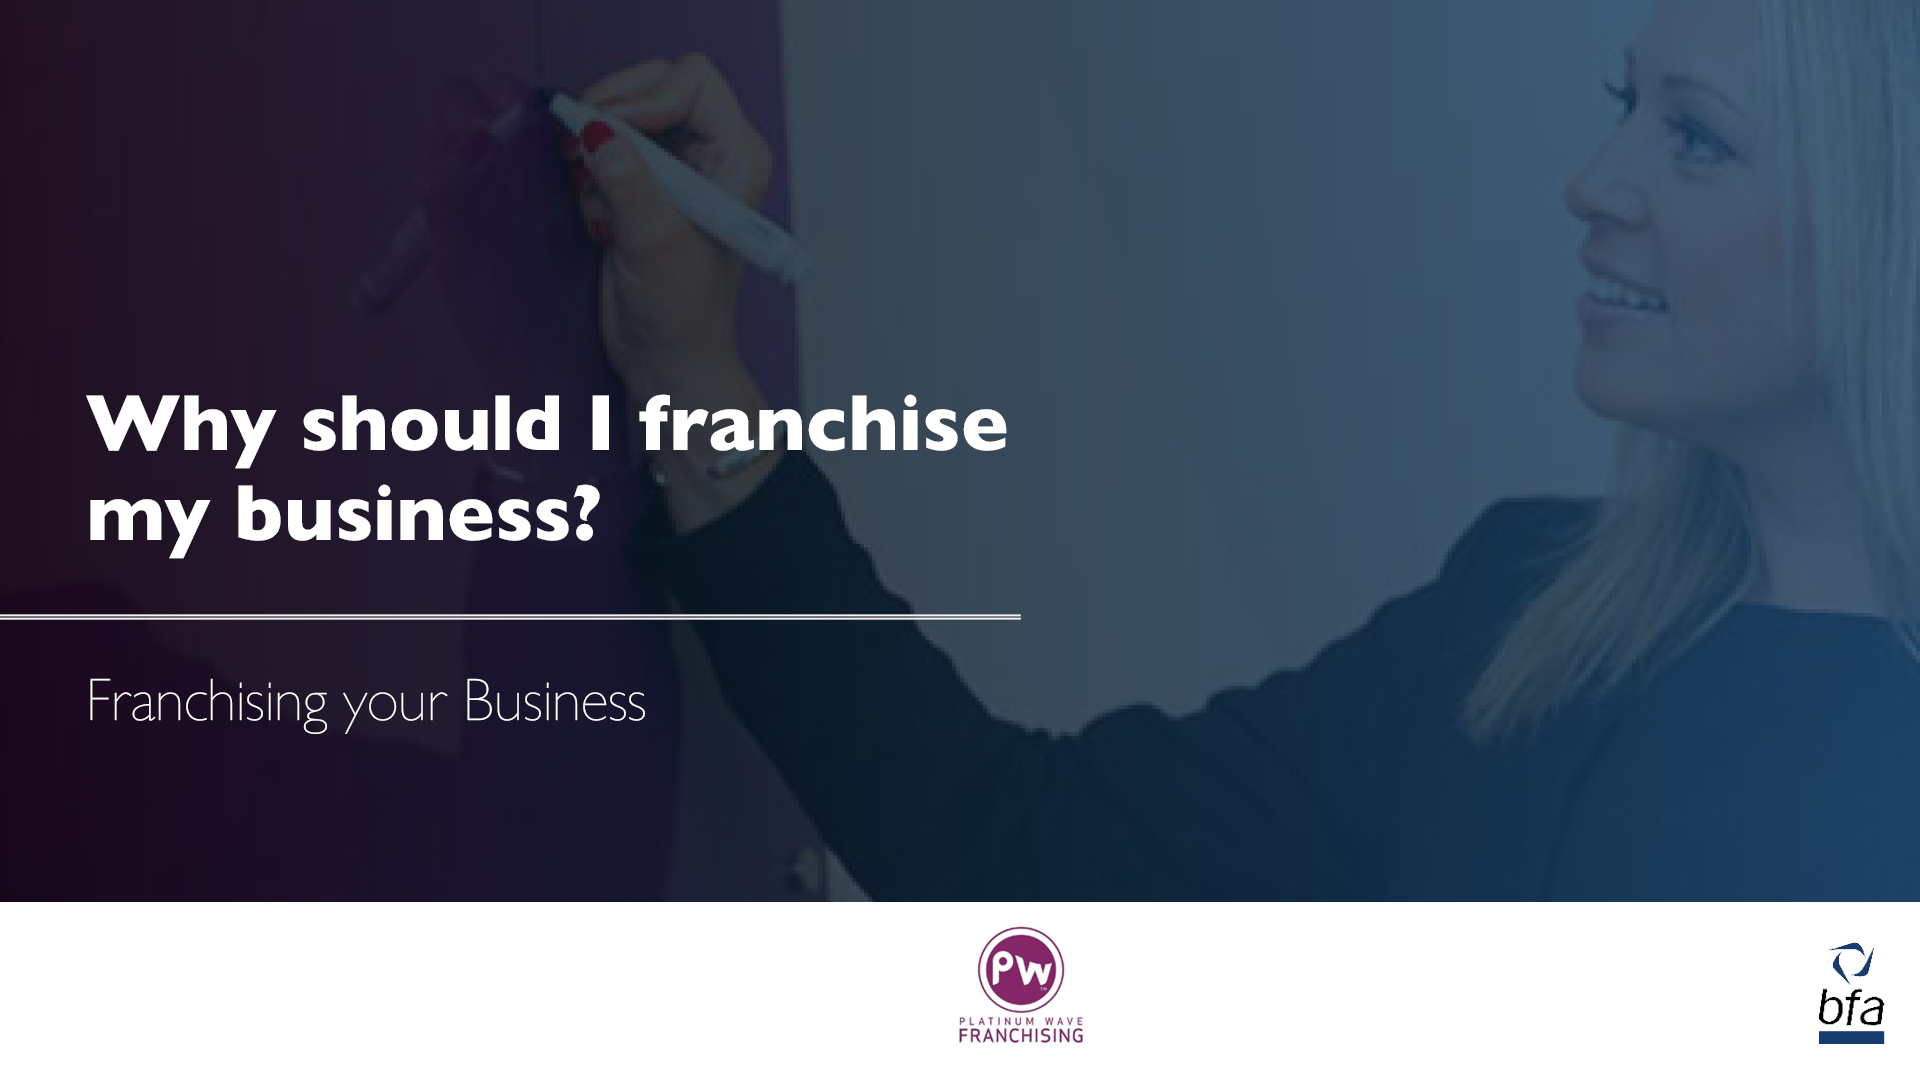 Why should I franchise my business?